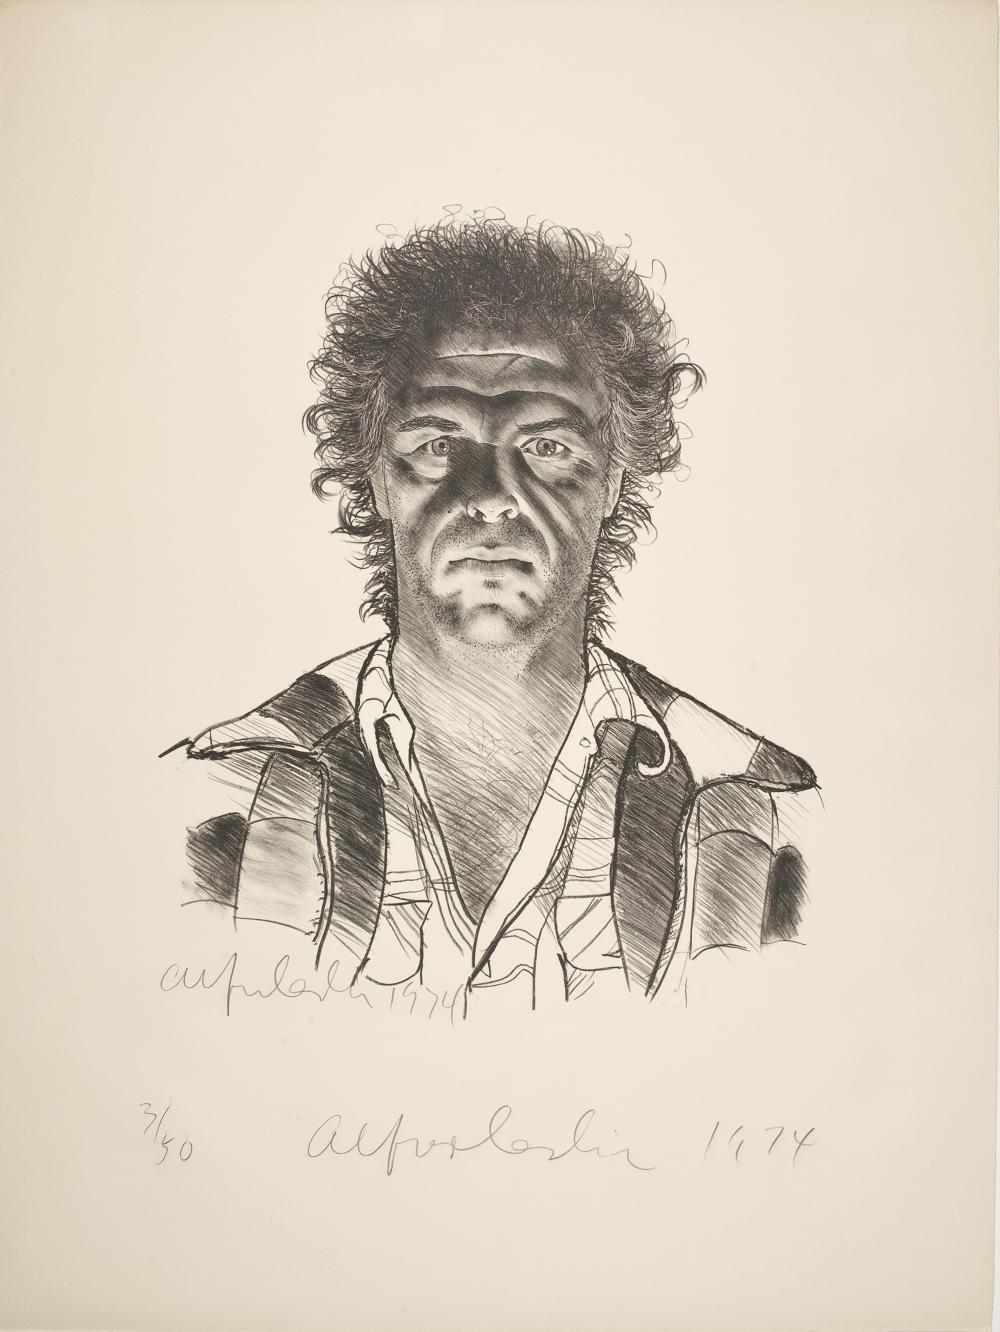 Alfred Leslie, Self Portrait, 1974